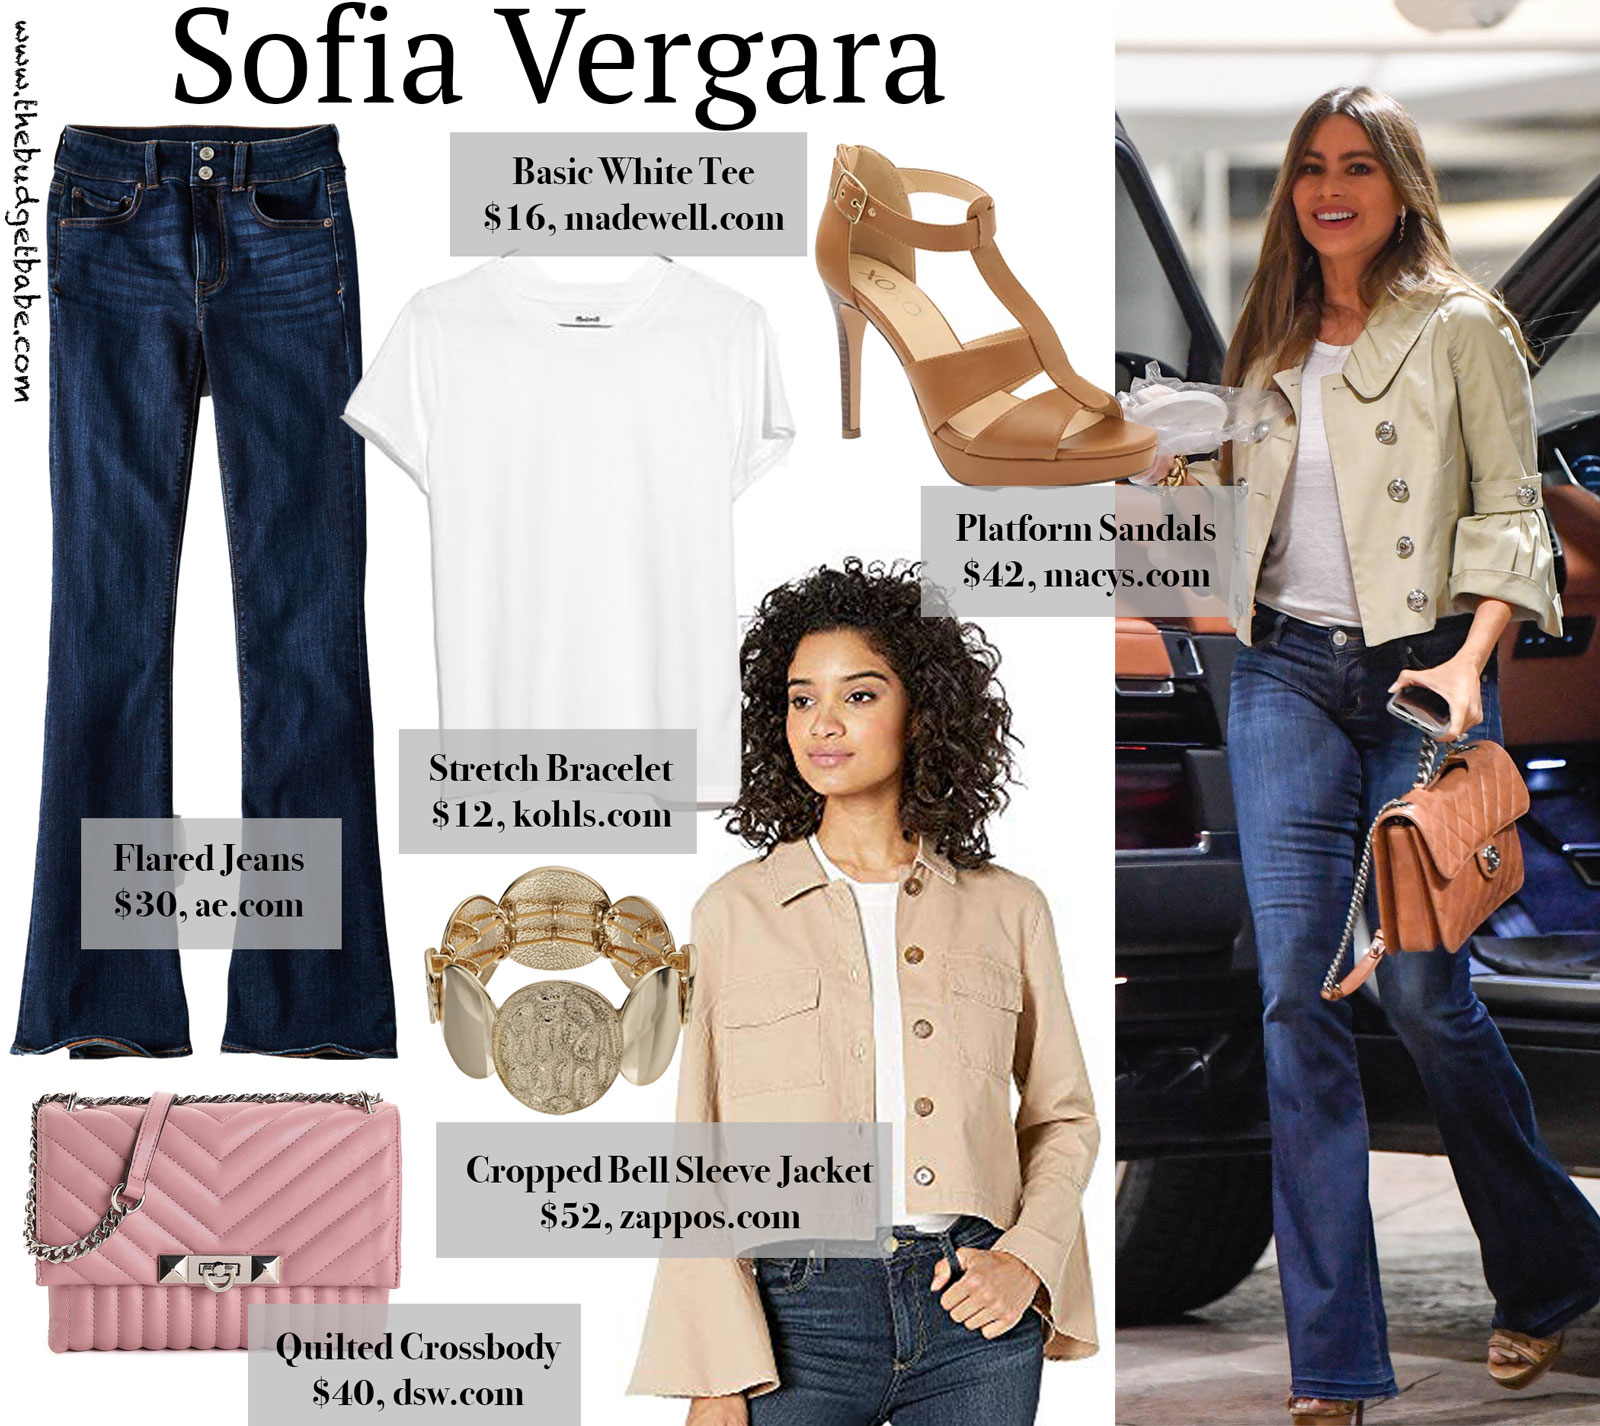 Sofia Vergara Cropped Jacket Flare Jeans Look for Less